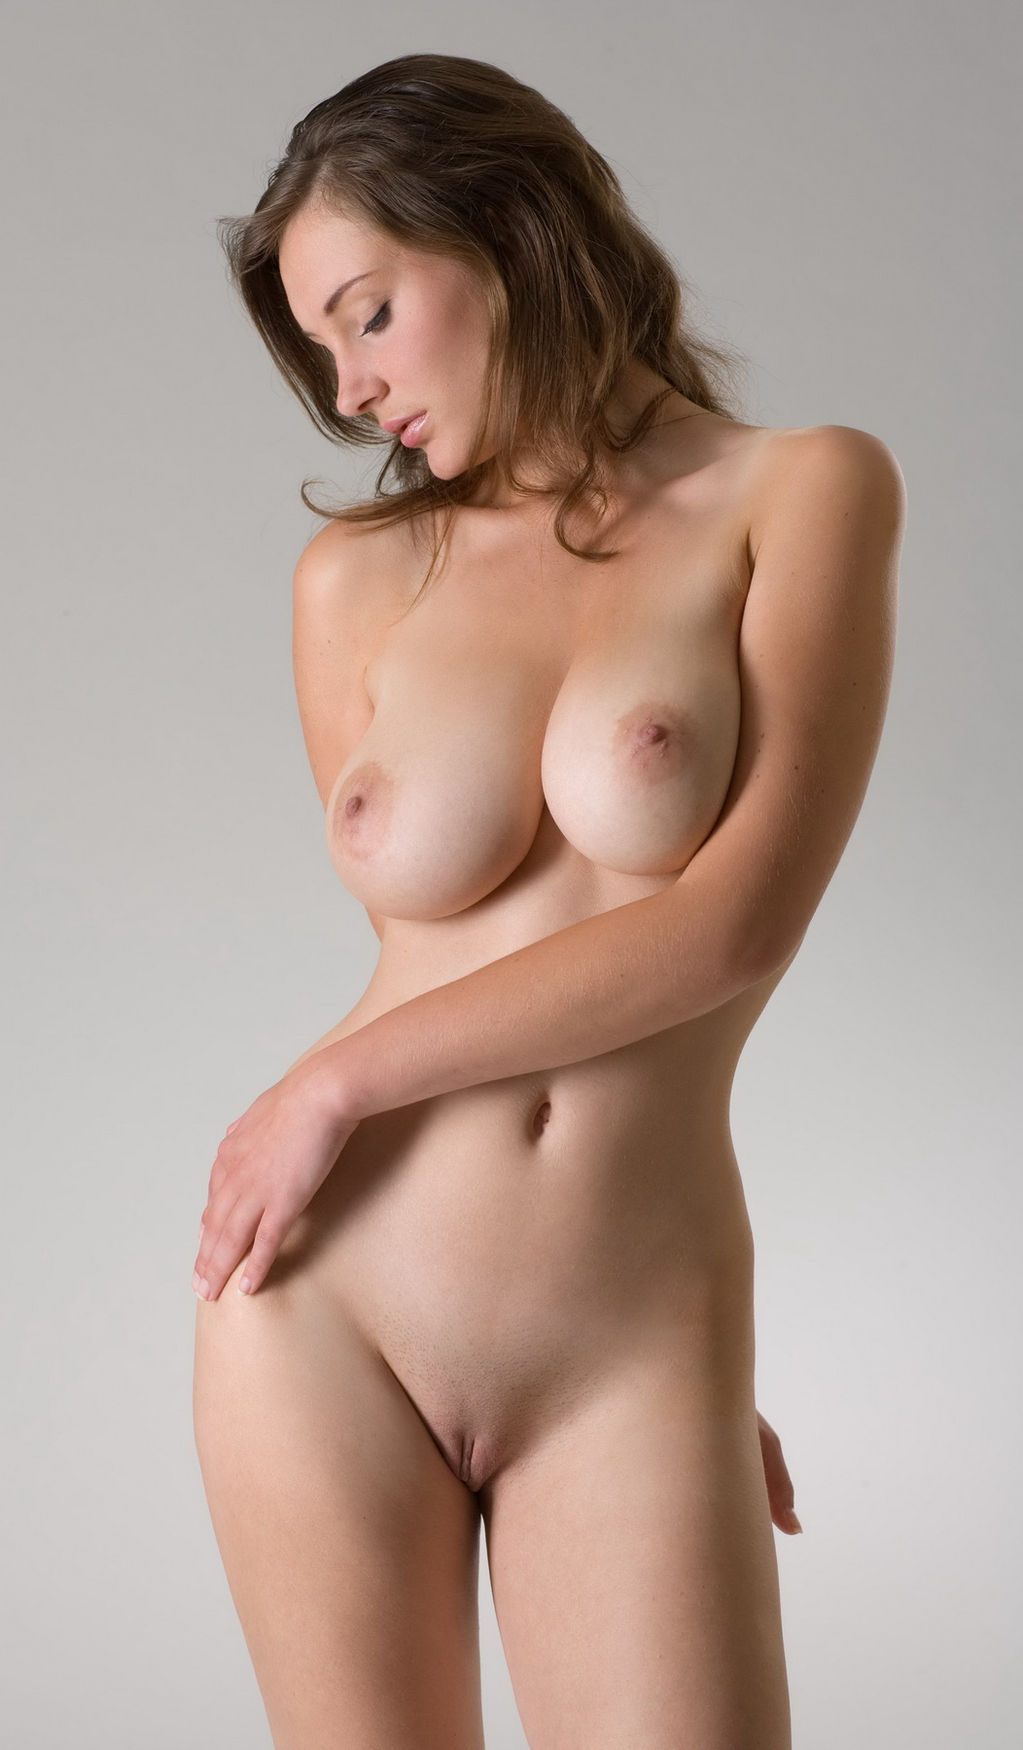 Brunette with big boobs without surgery